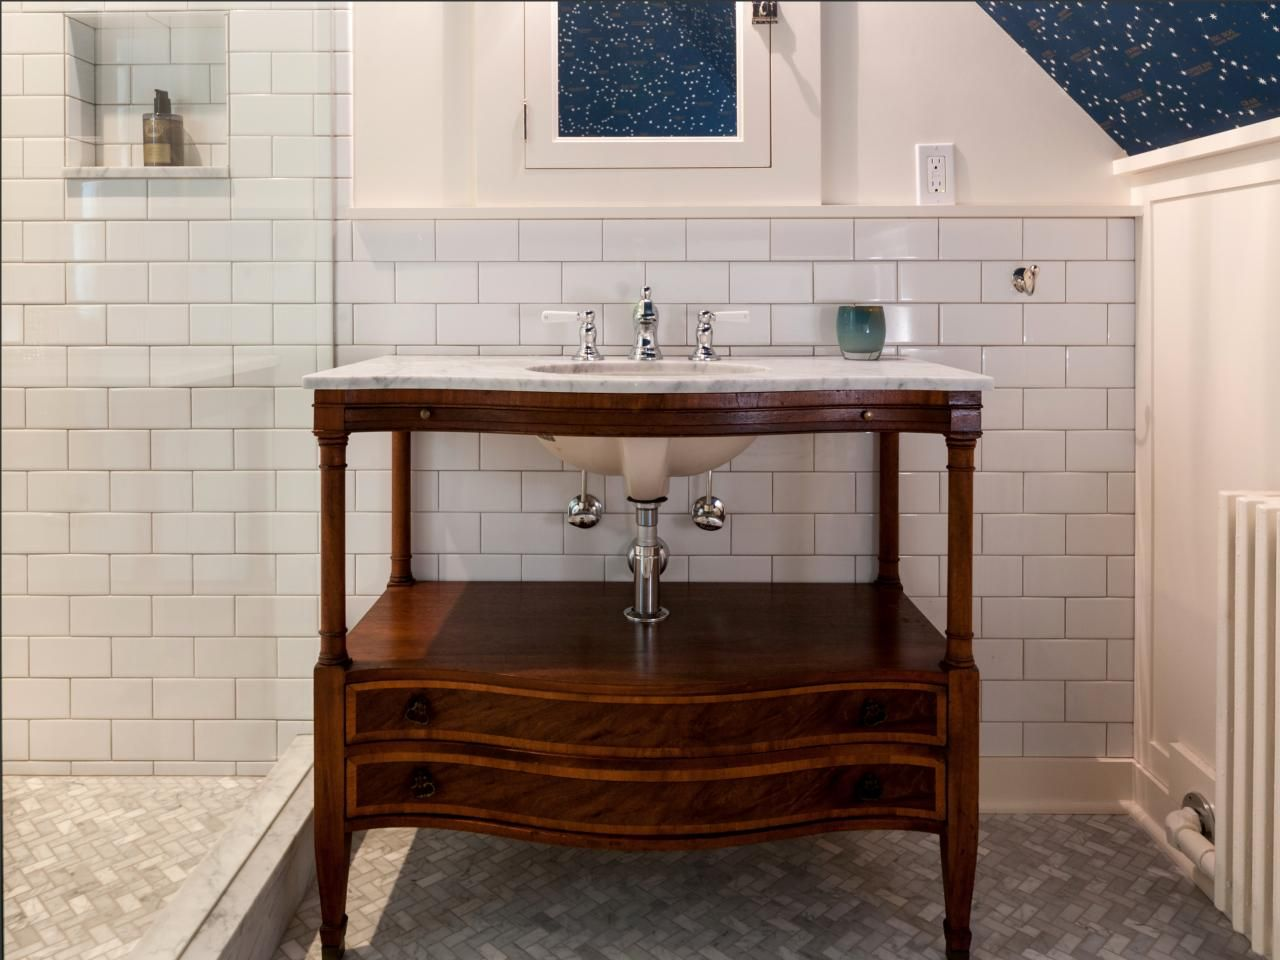 20 Upcycled And One Of A Kind Bathroom Vanities Diy Ideas